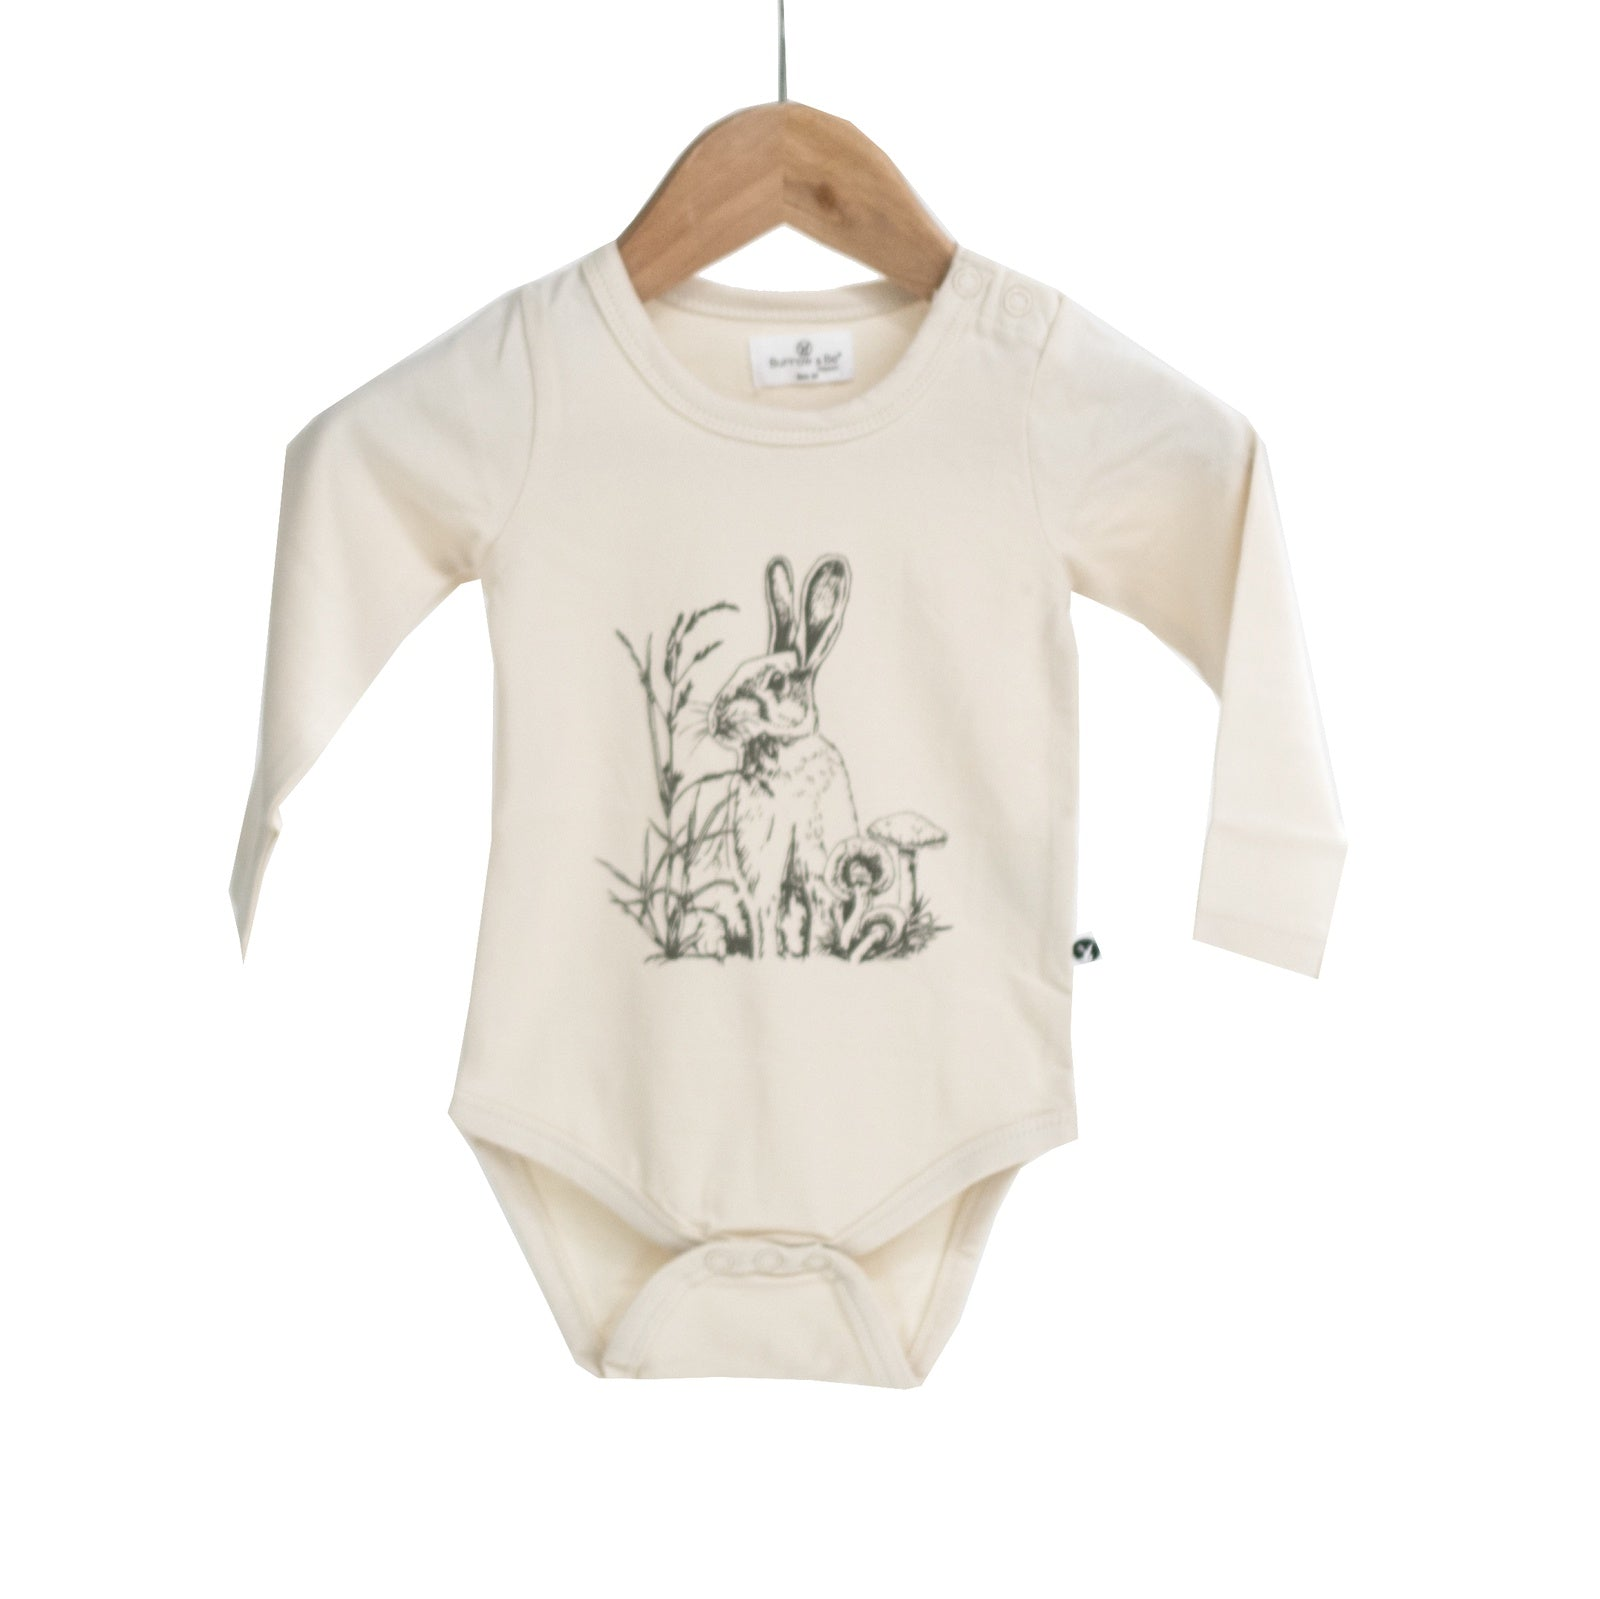 Burrow & Be Almond Baxter Long Sleeve Onesie